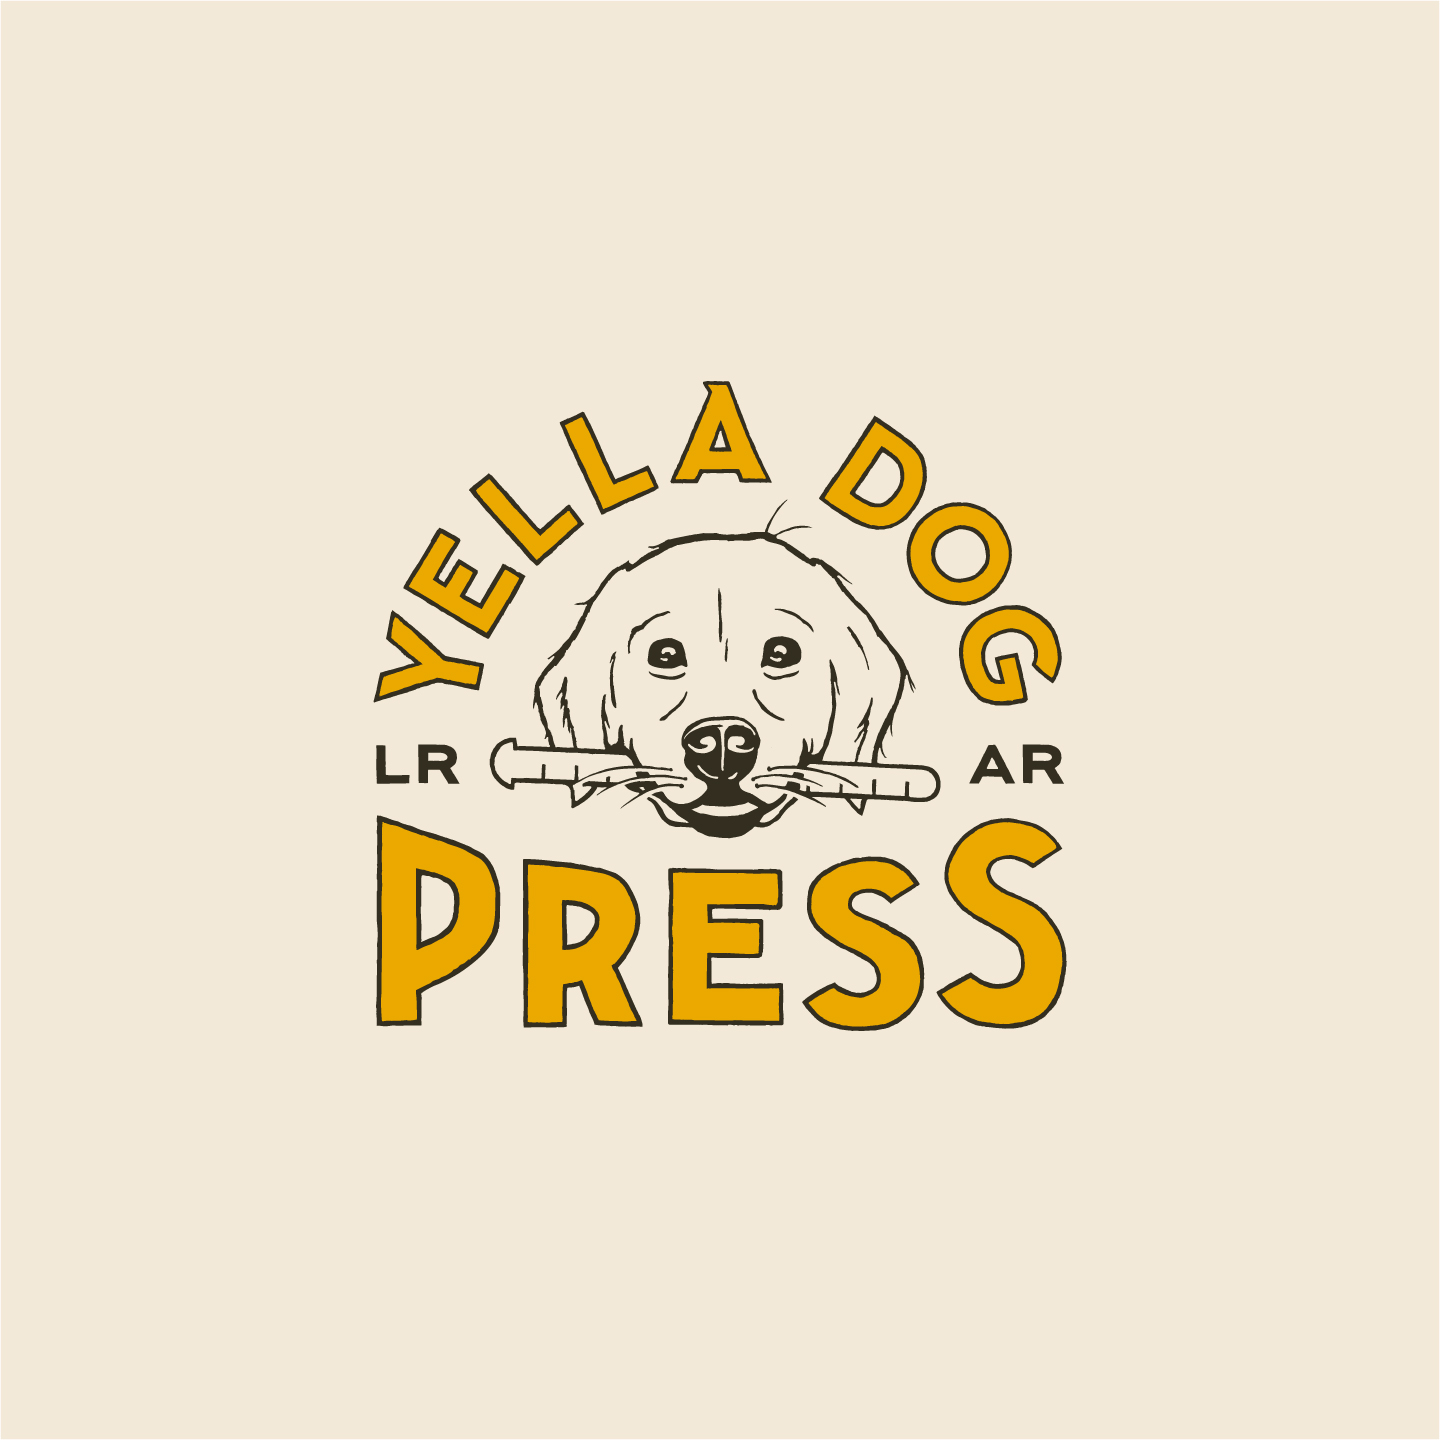 Yella Dog Press logo by Hunter Oden of oden.house